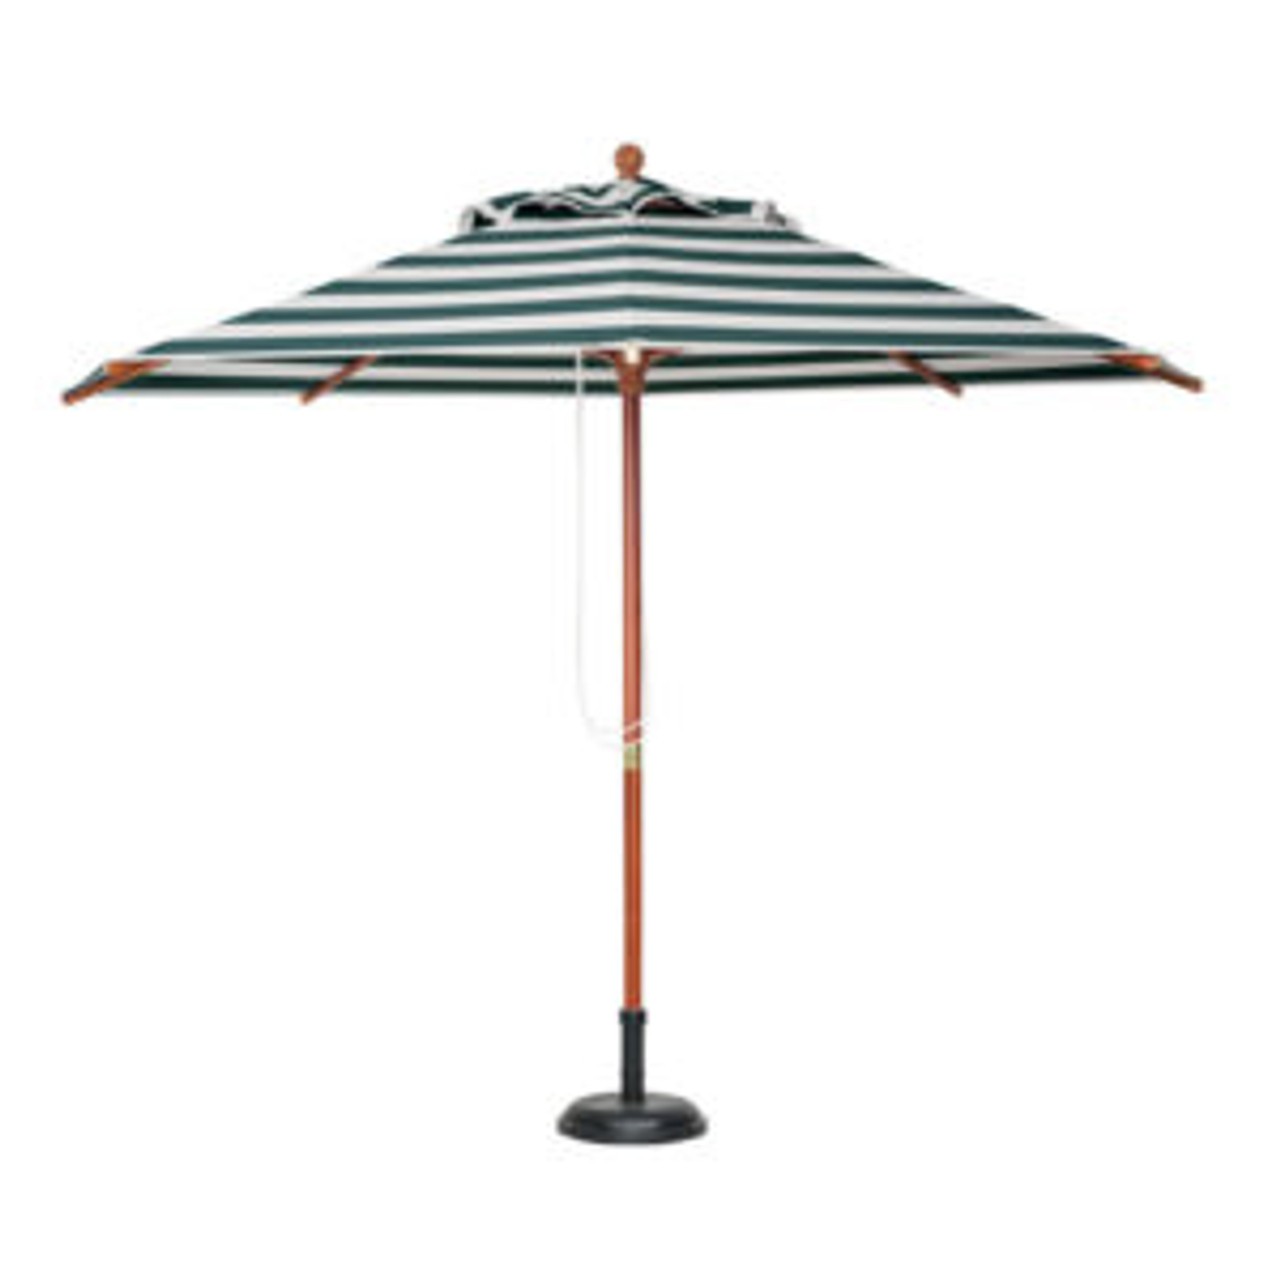 2M Market Umbrella - Wooden Frame with Striped Planosol Shade